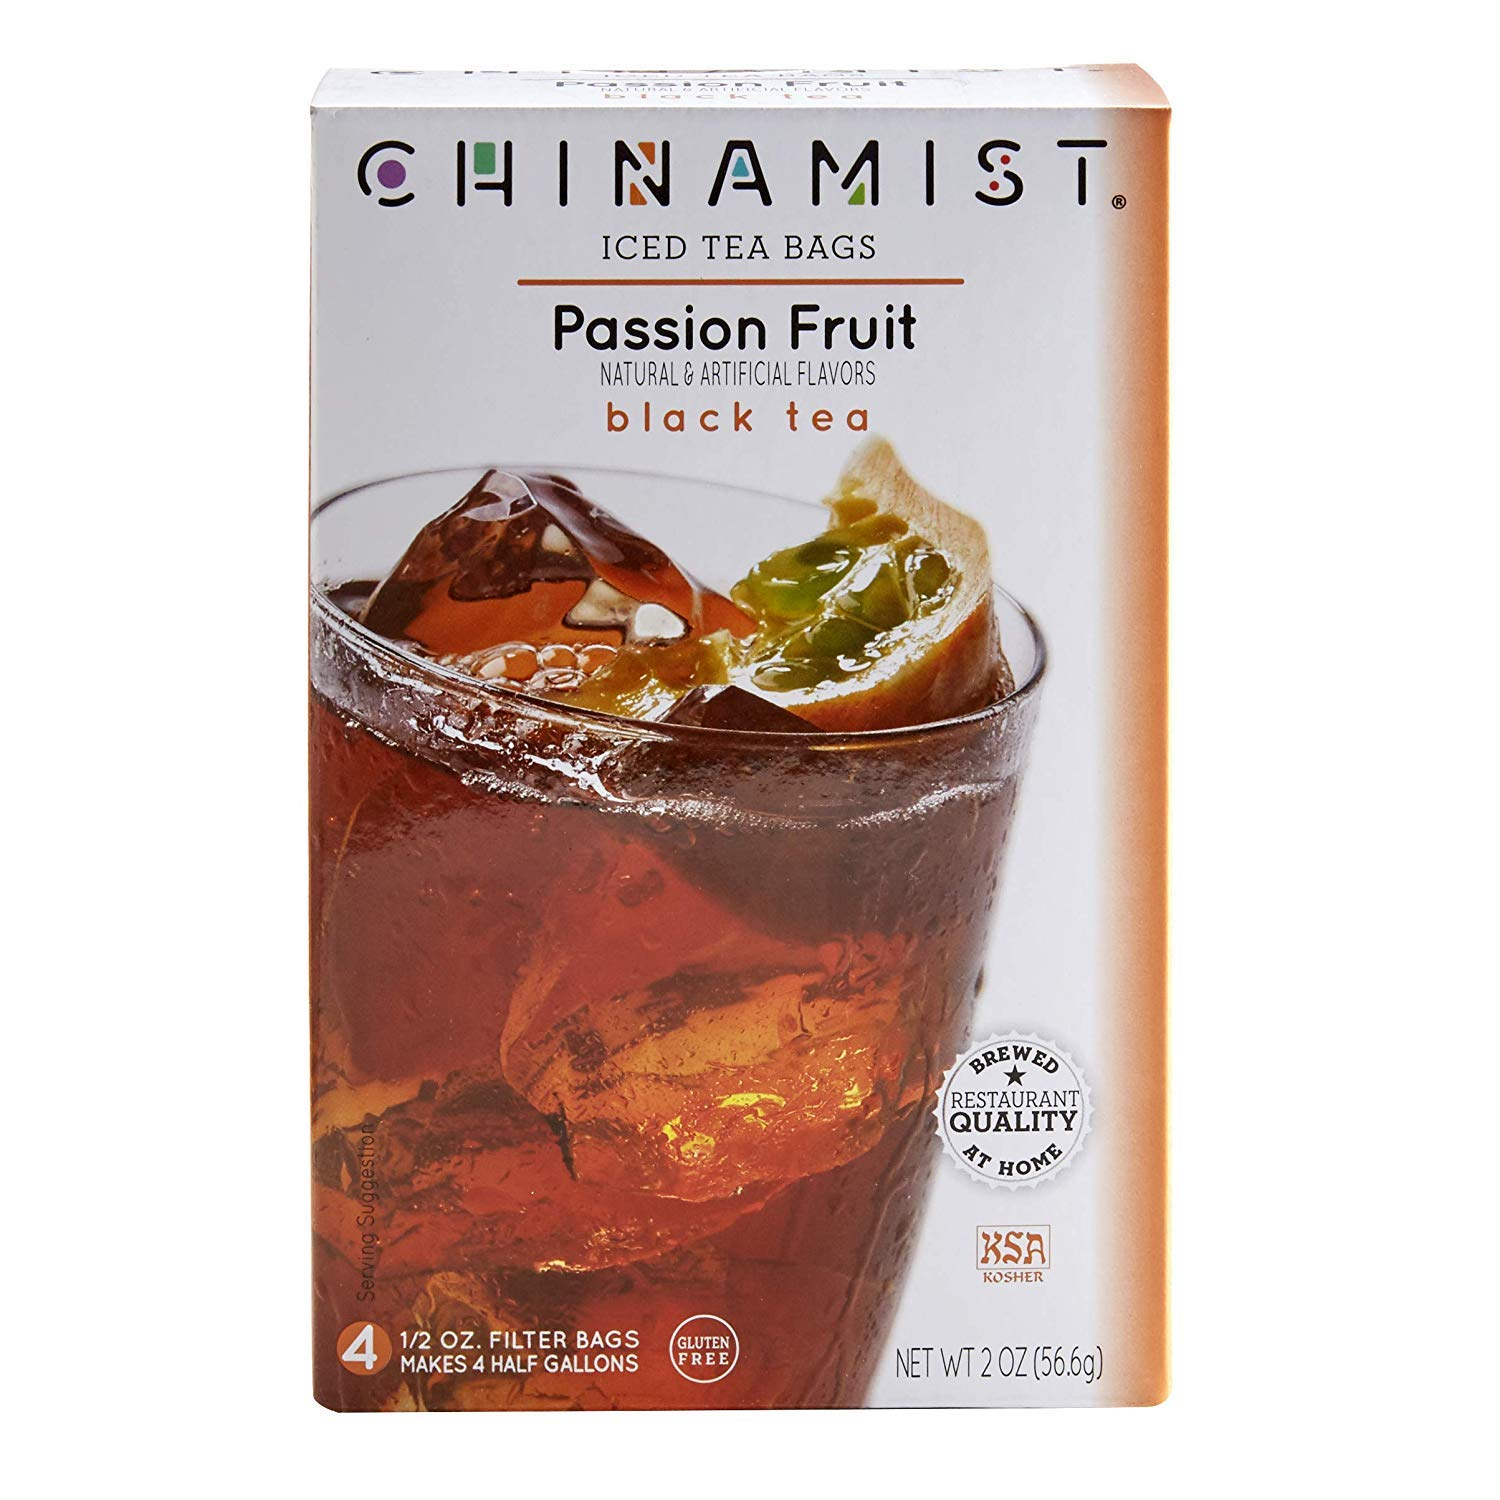 China Mist Passion Fruit Black Year-end gift Tea for Pack 6 Iced 2021 Bags